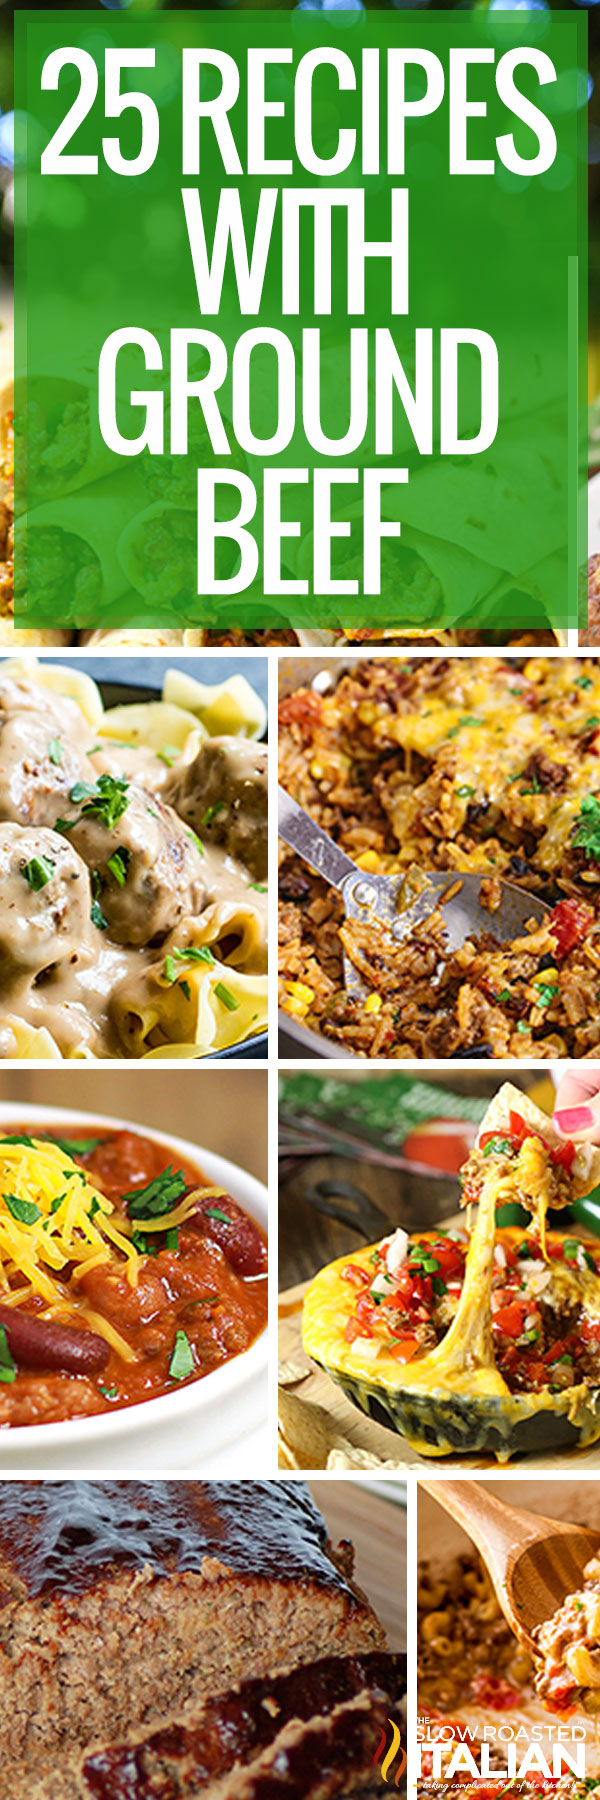 collage: recipes with ground beef